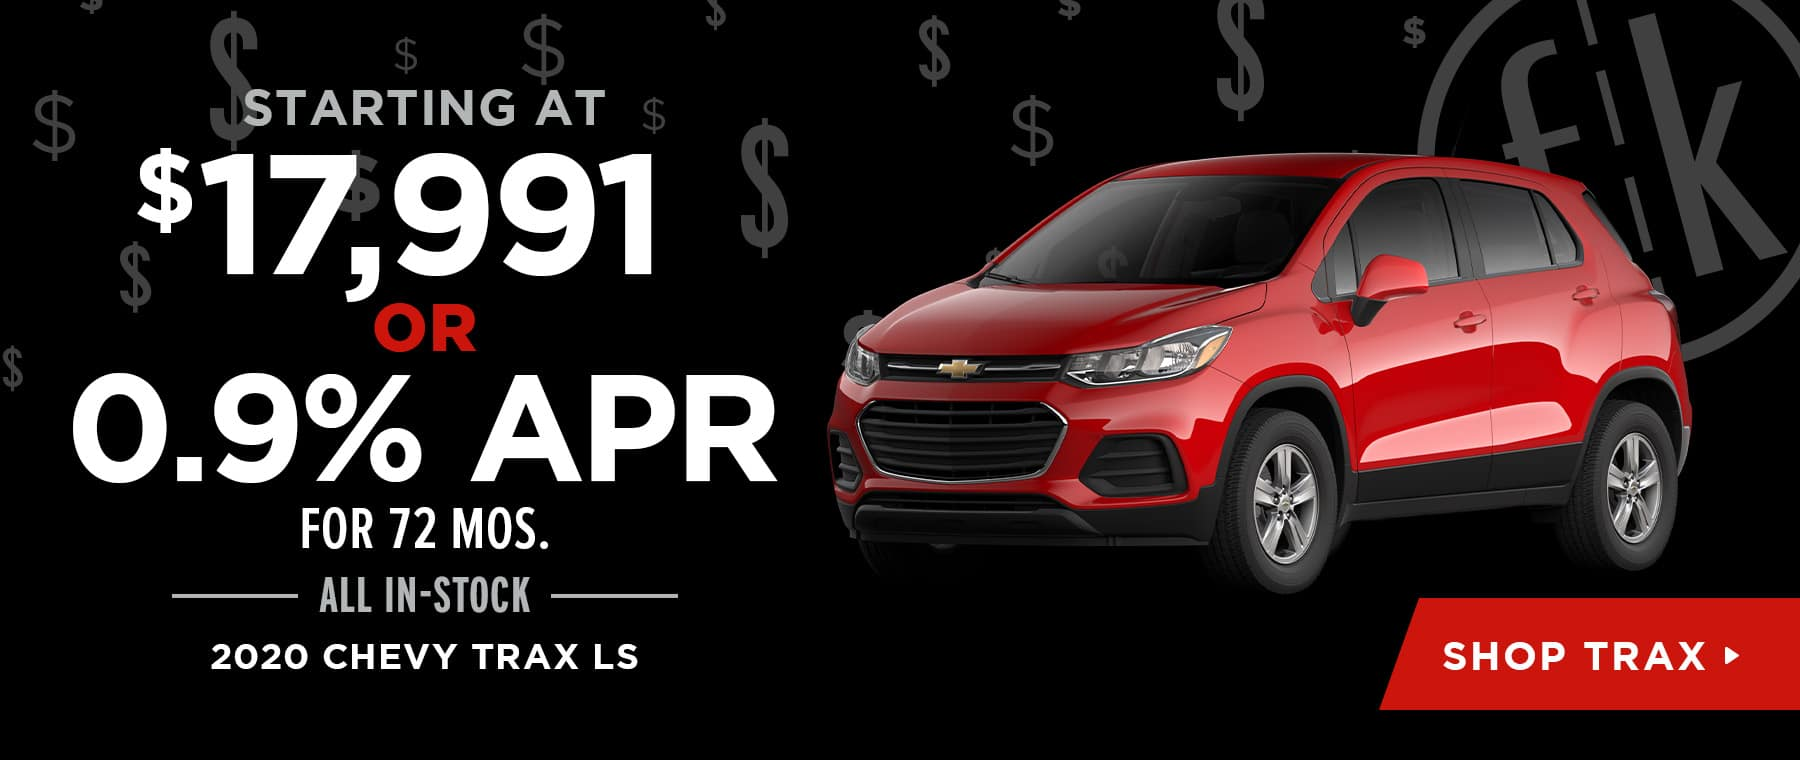 Starting At $17,991 OR 0.9% for 72 mos. All In-Stock 2020 Chevy Trax LS